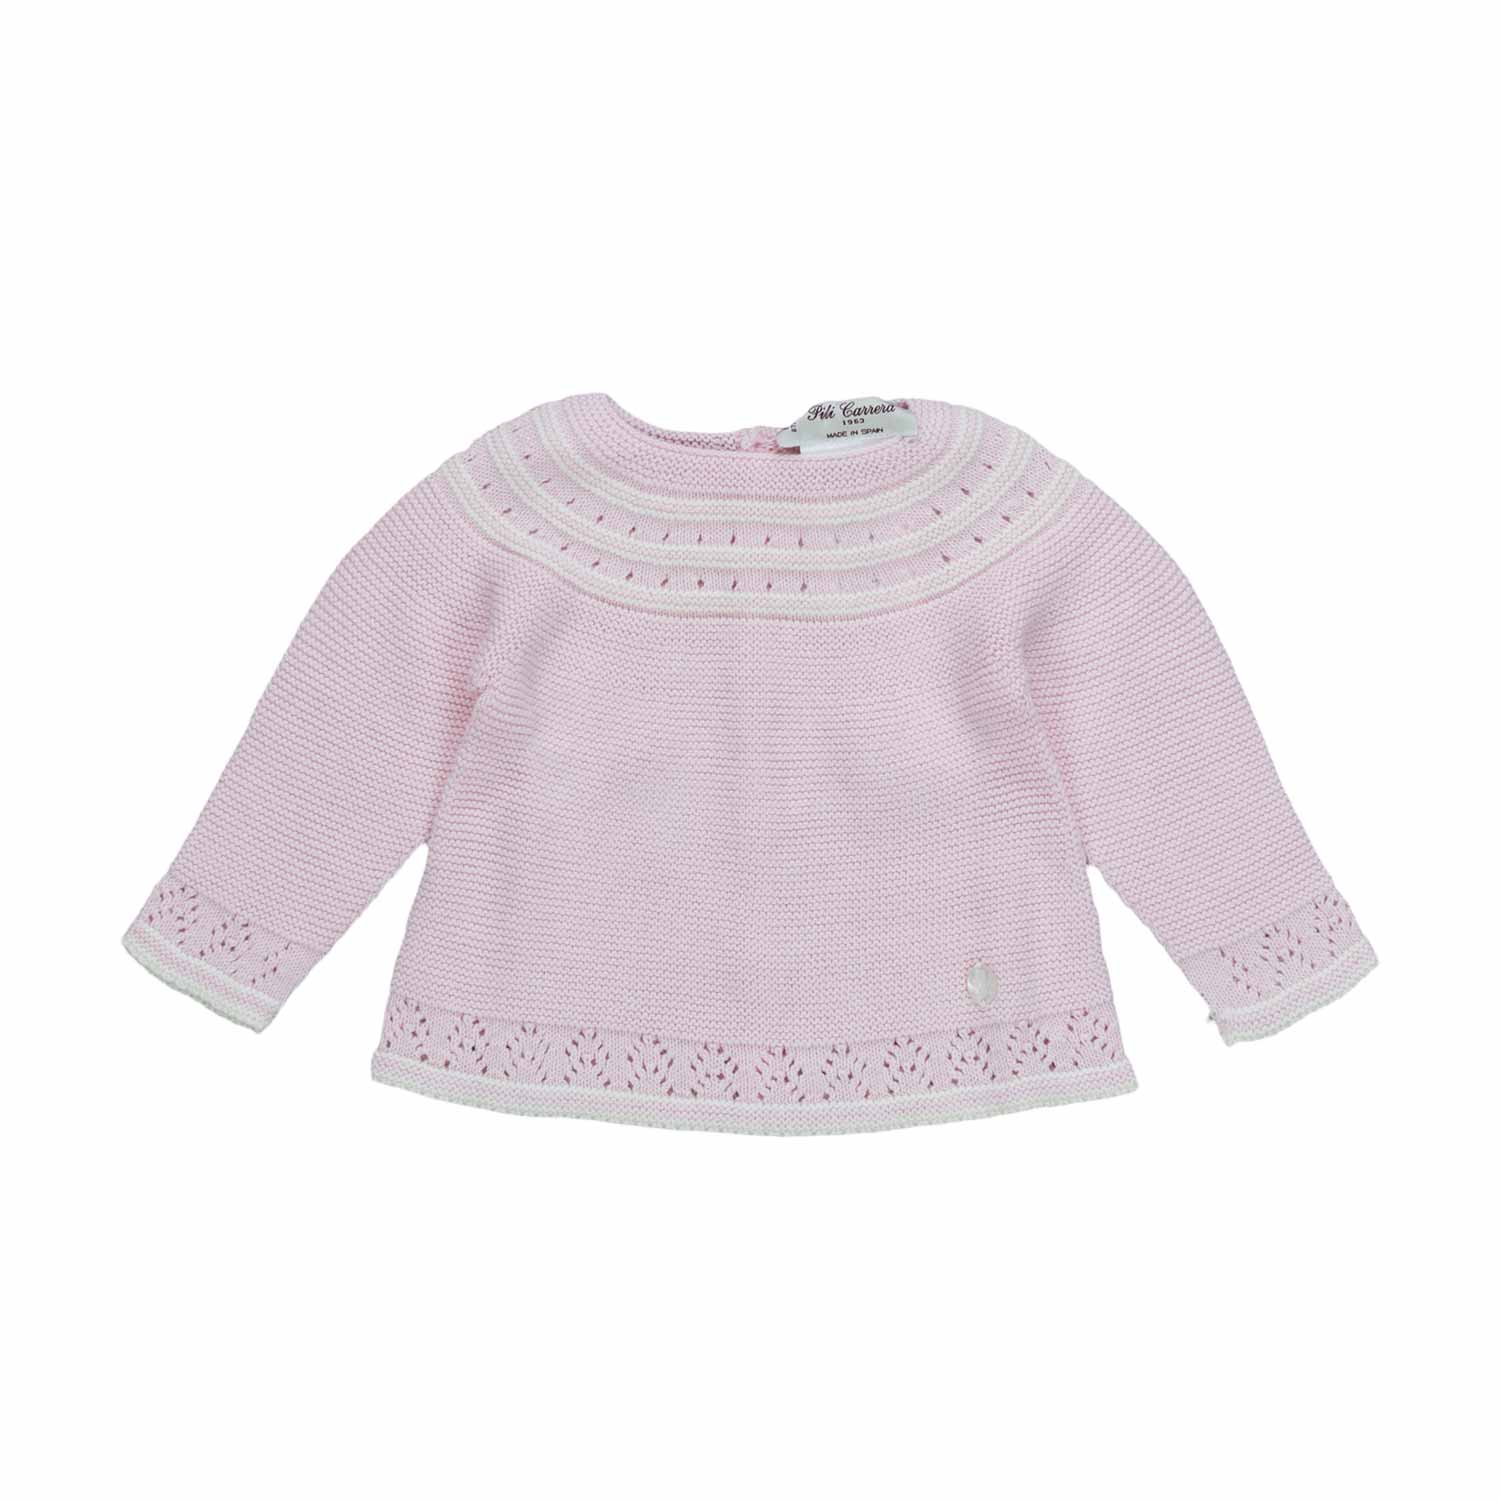 d309510b0 Pili Carrera - Lilac Sweater For Baby Girls - annameglio.com shop online